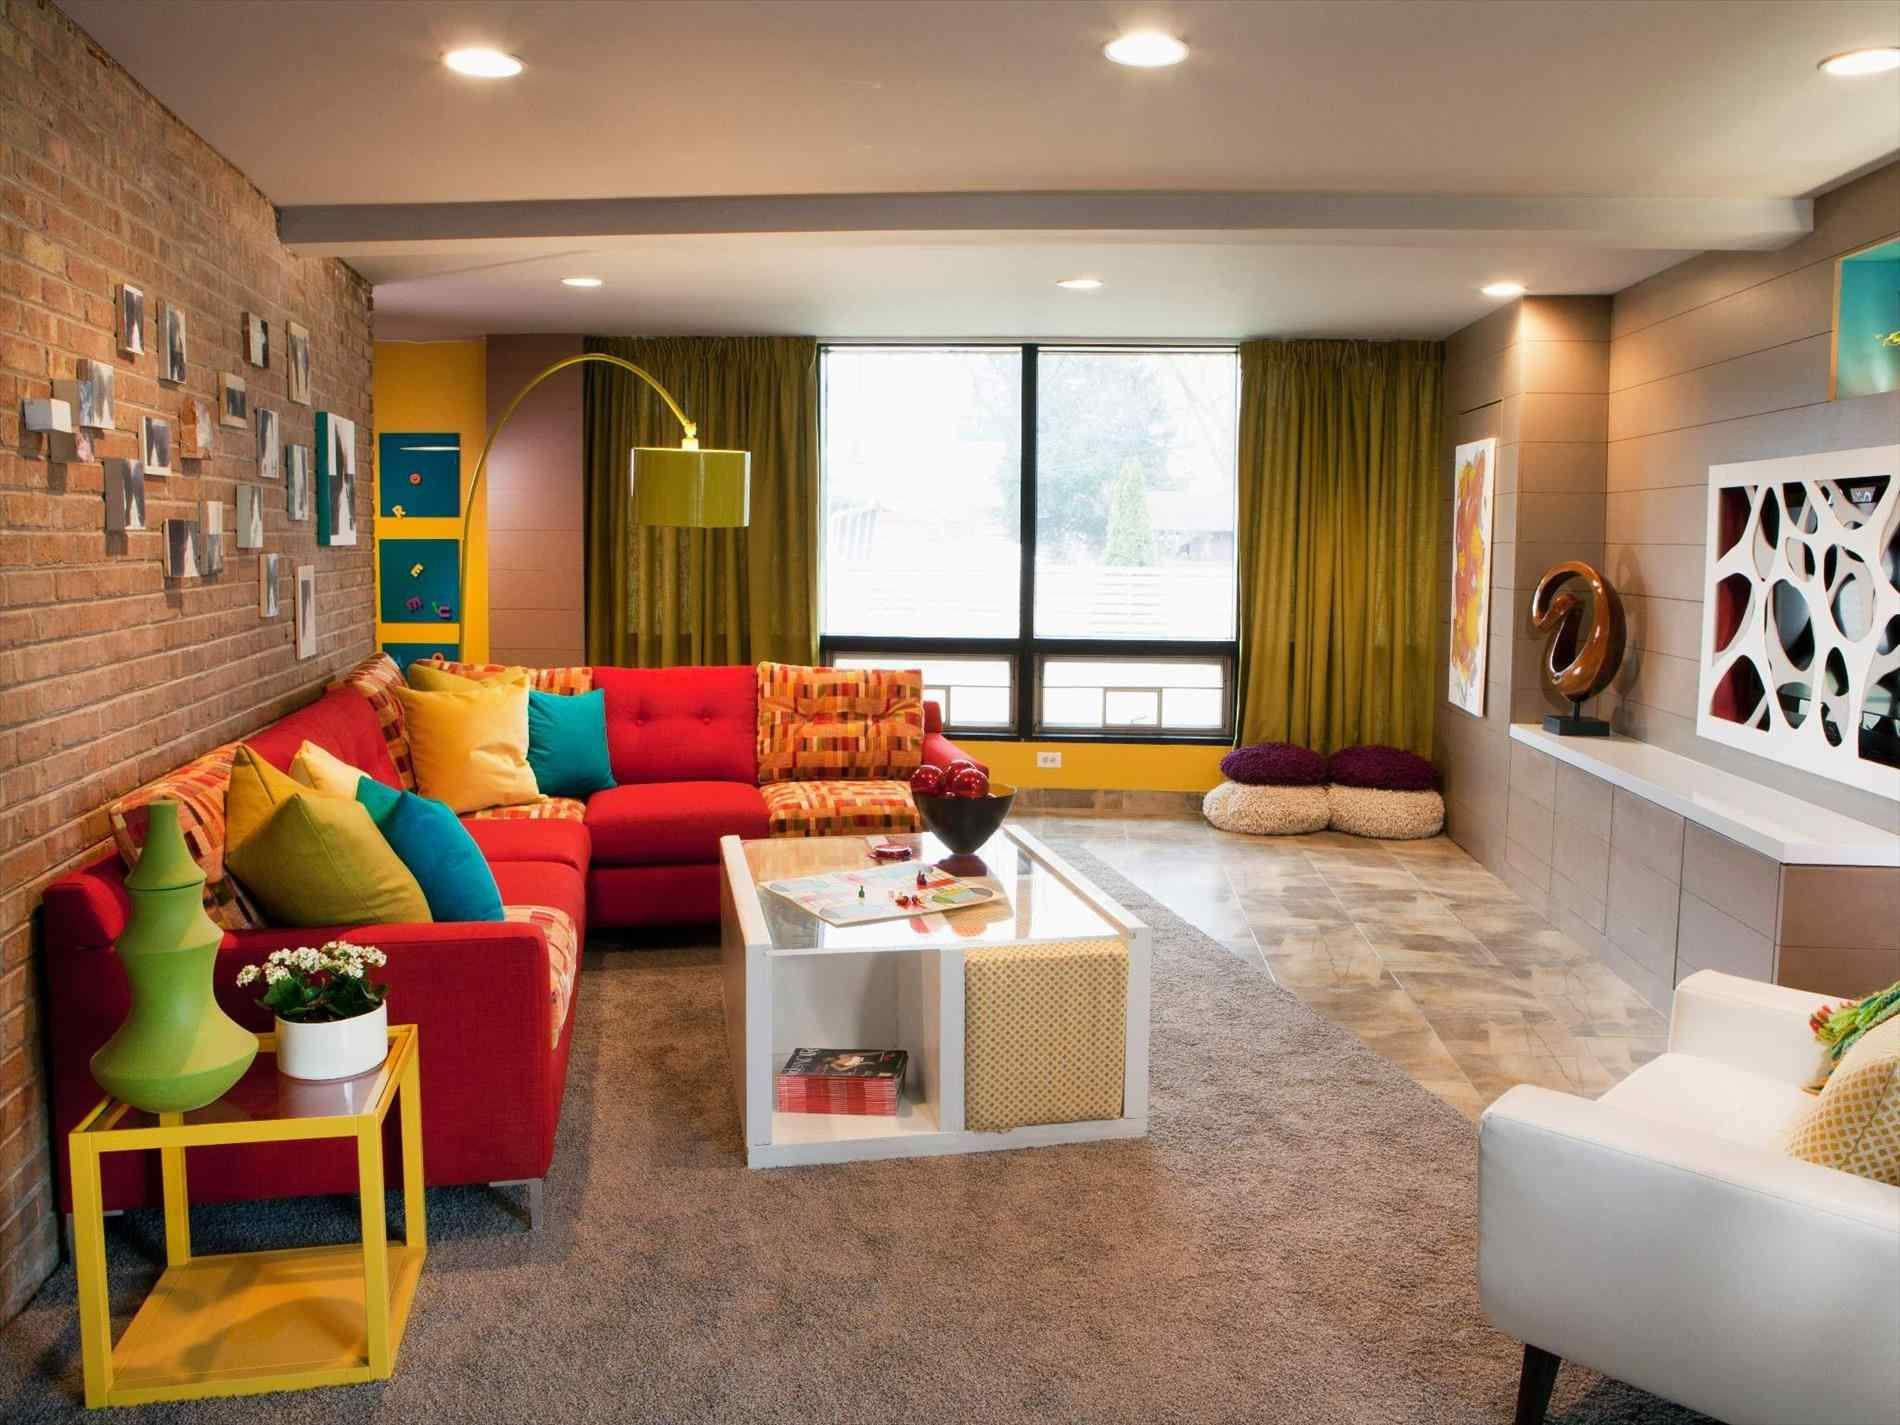 Chic 13 Kid Friendly Family Room Design Ideas images